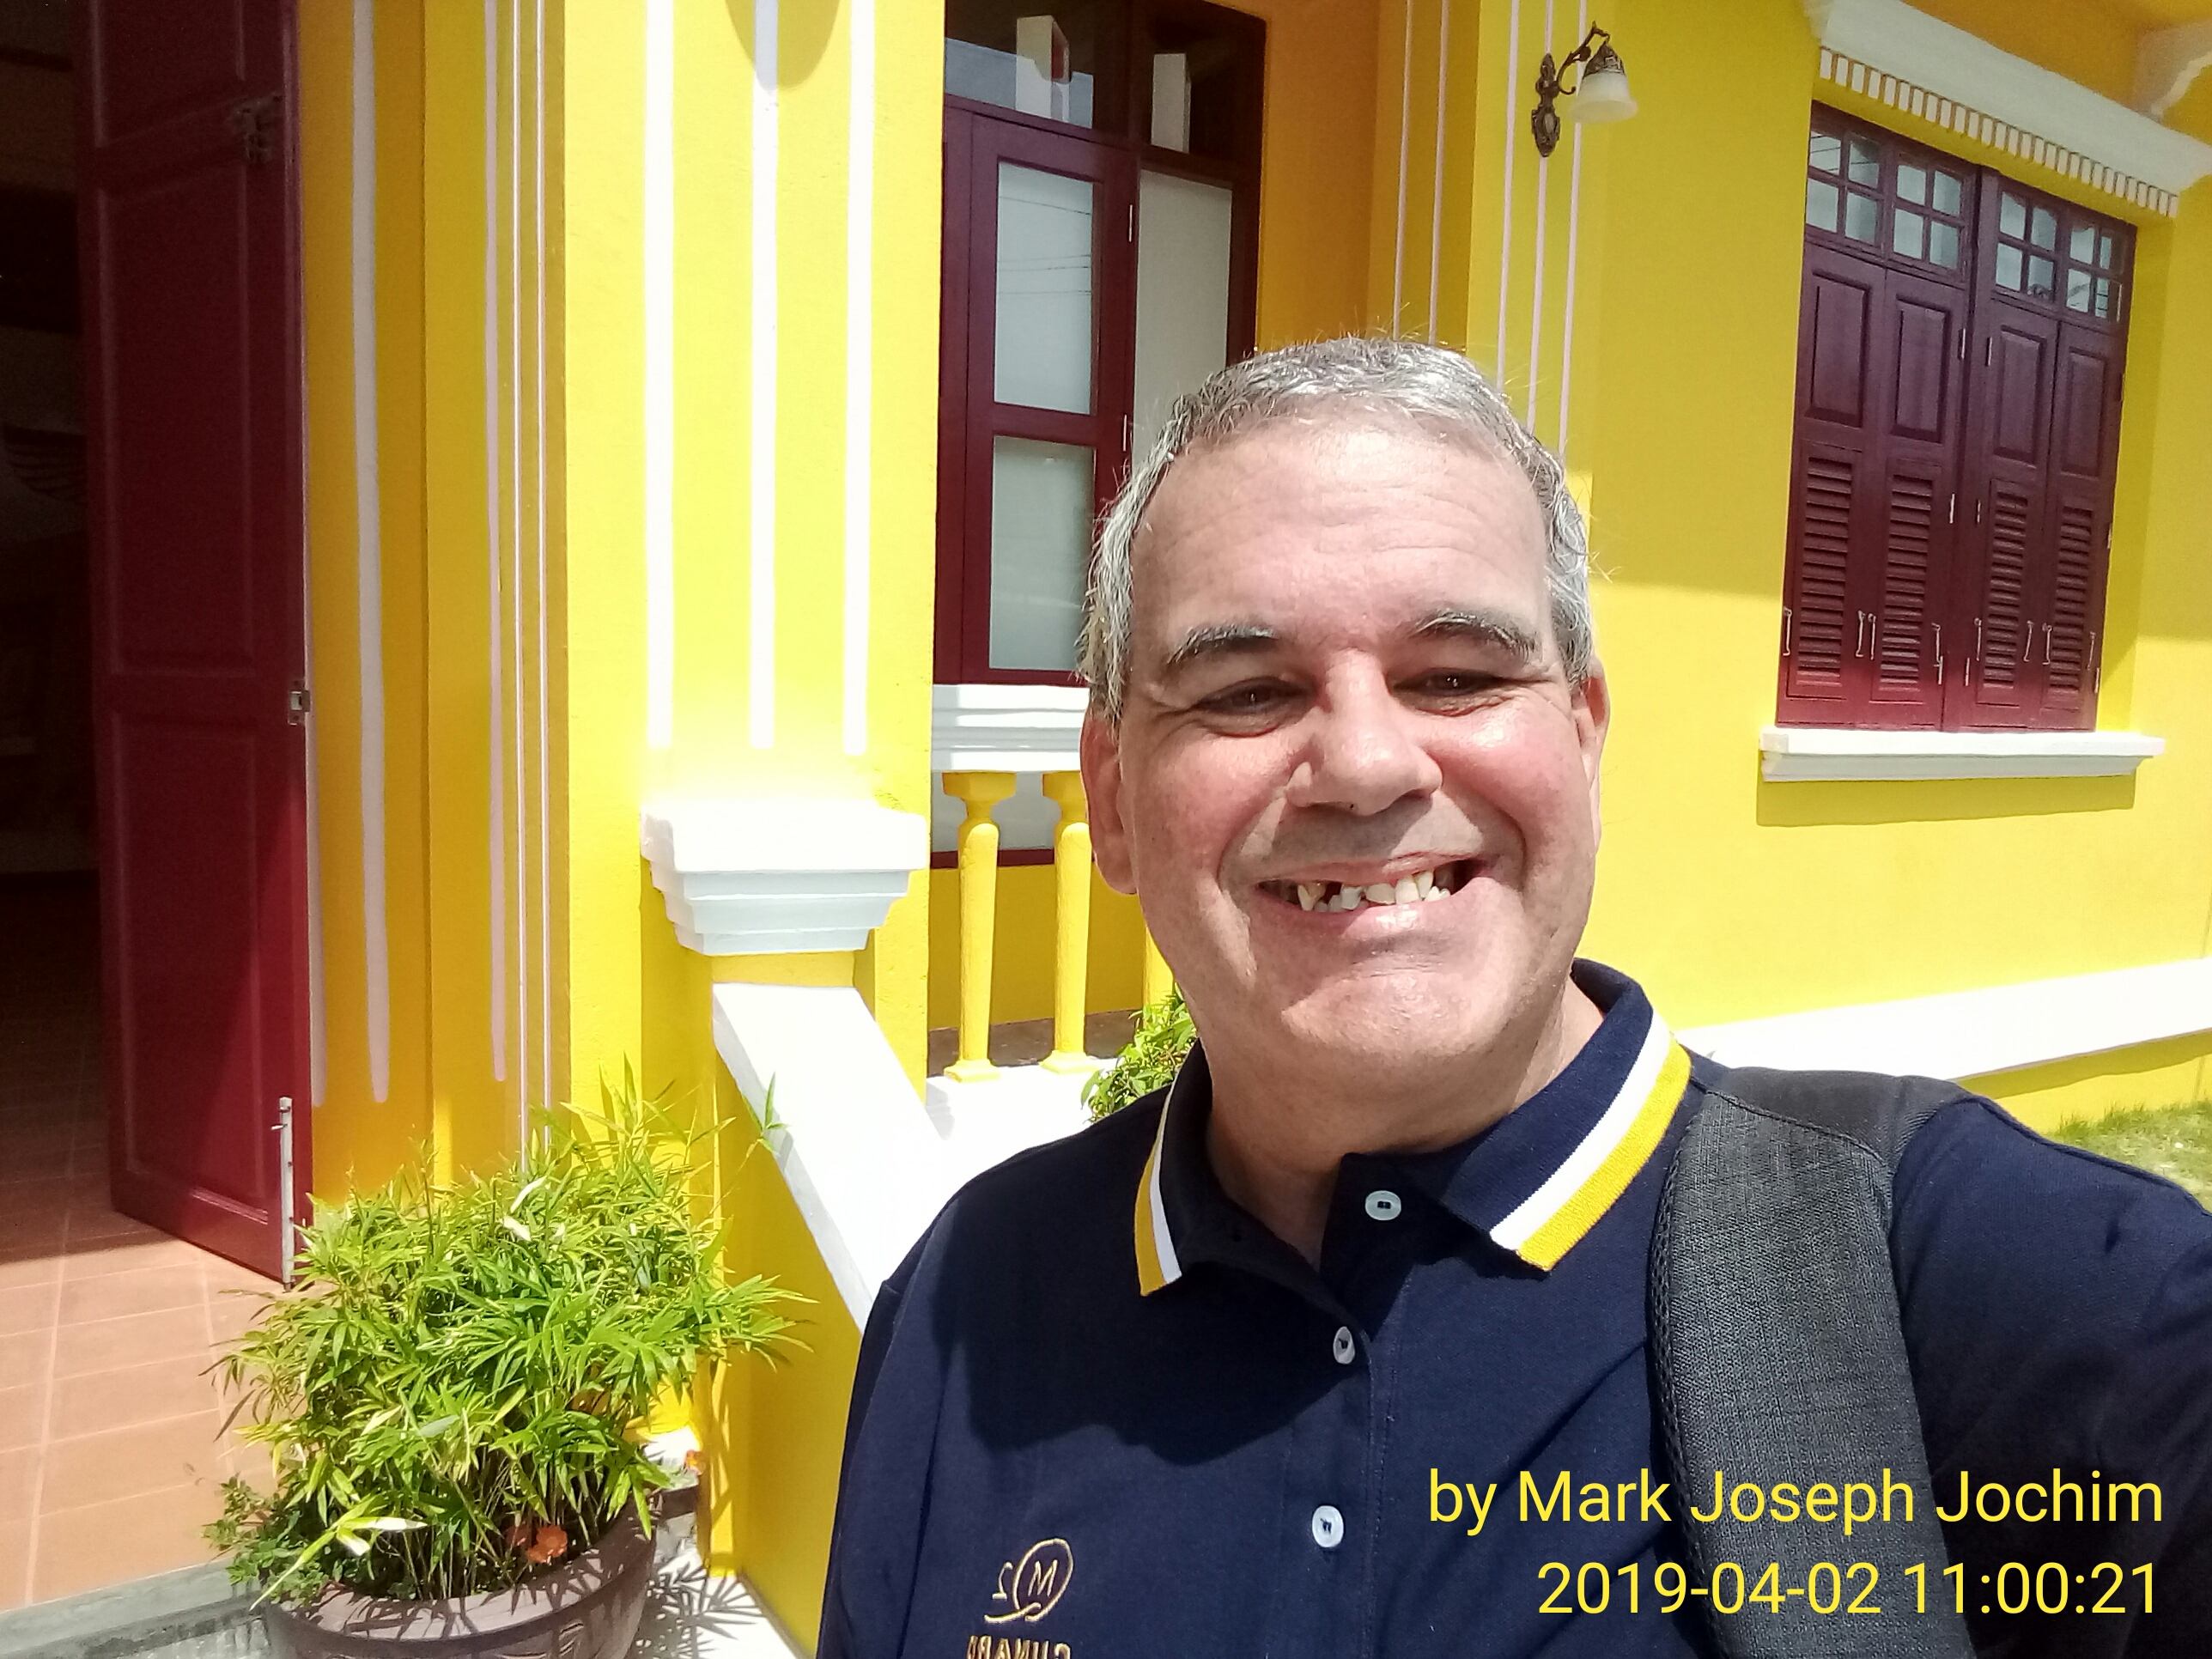 Mark Joseph Jochim at Phuket Philatelic Museum, April 2019